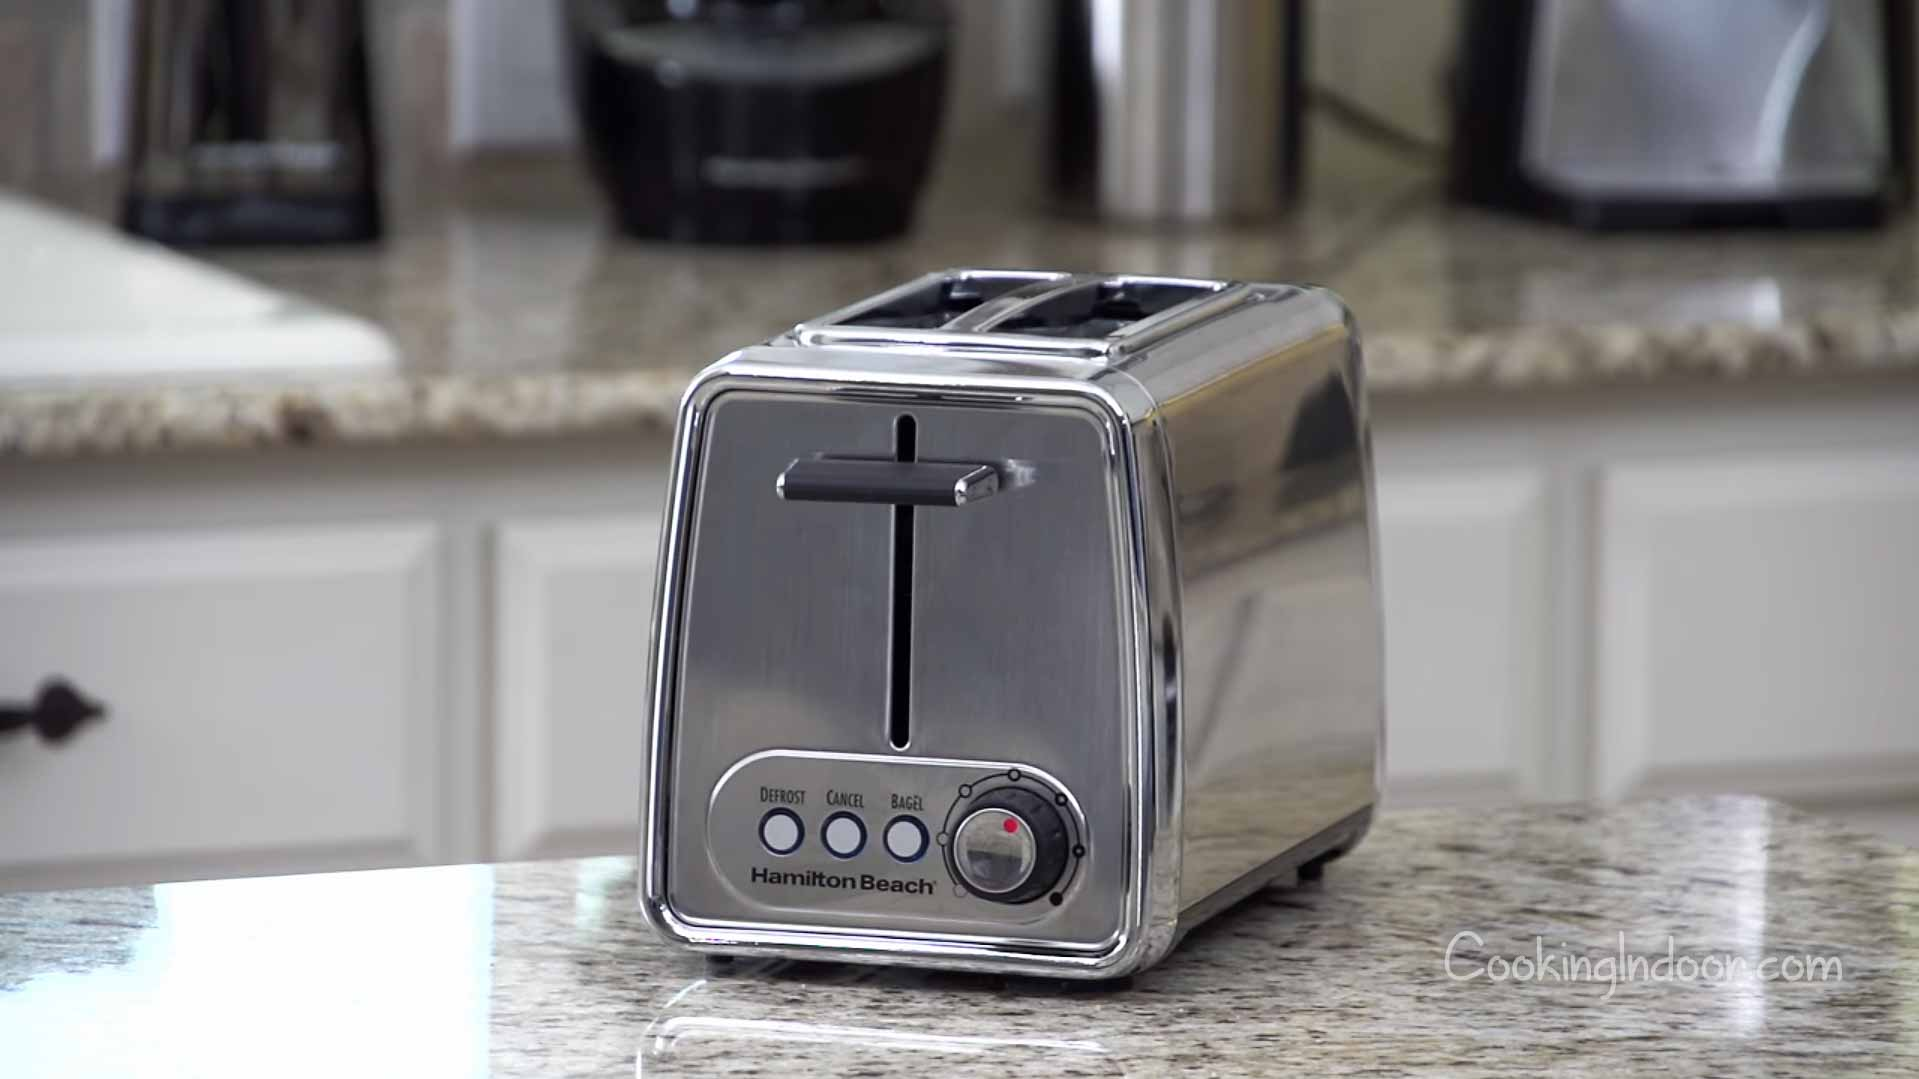 Best Hamilton Beach toaster